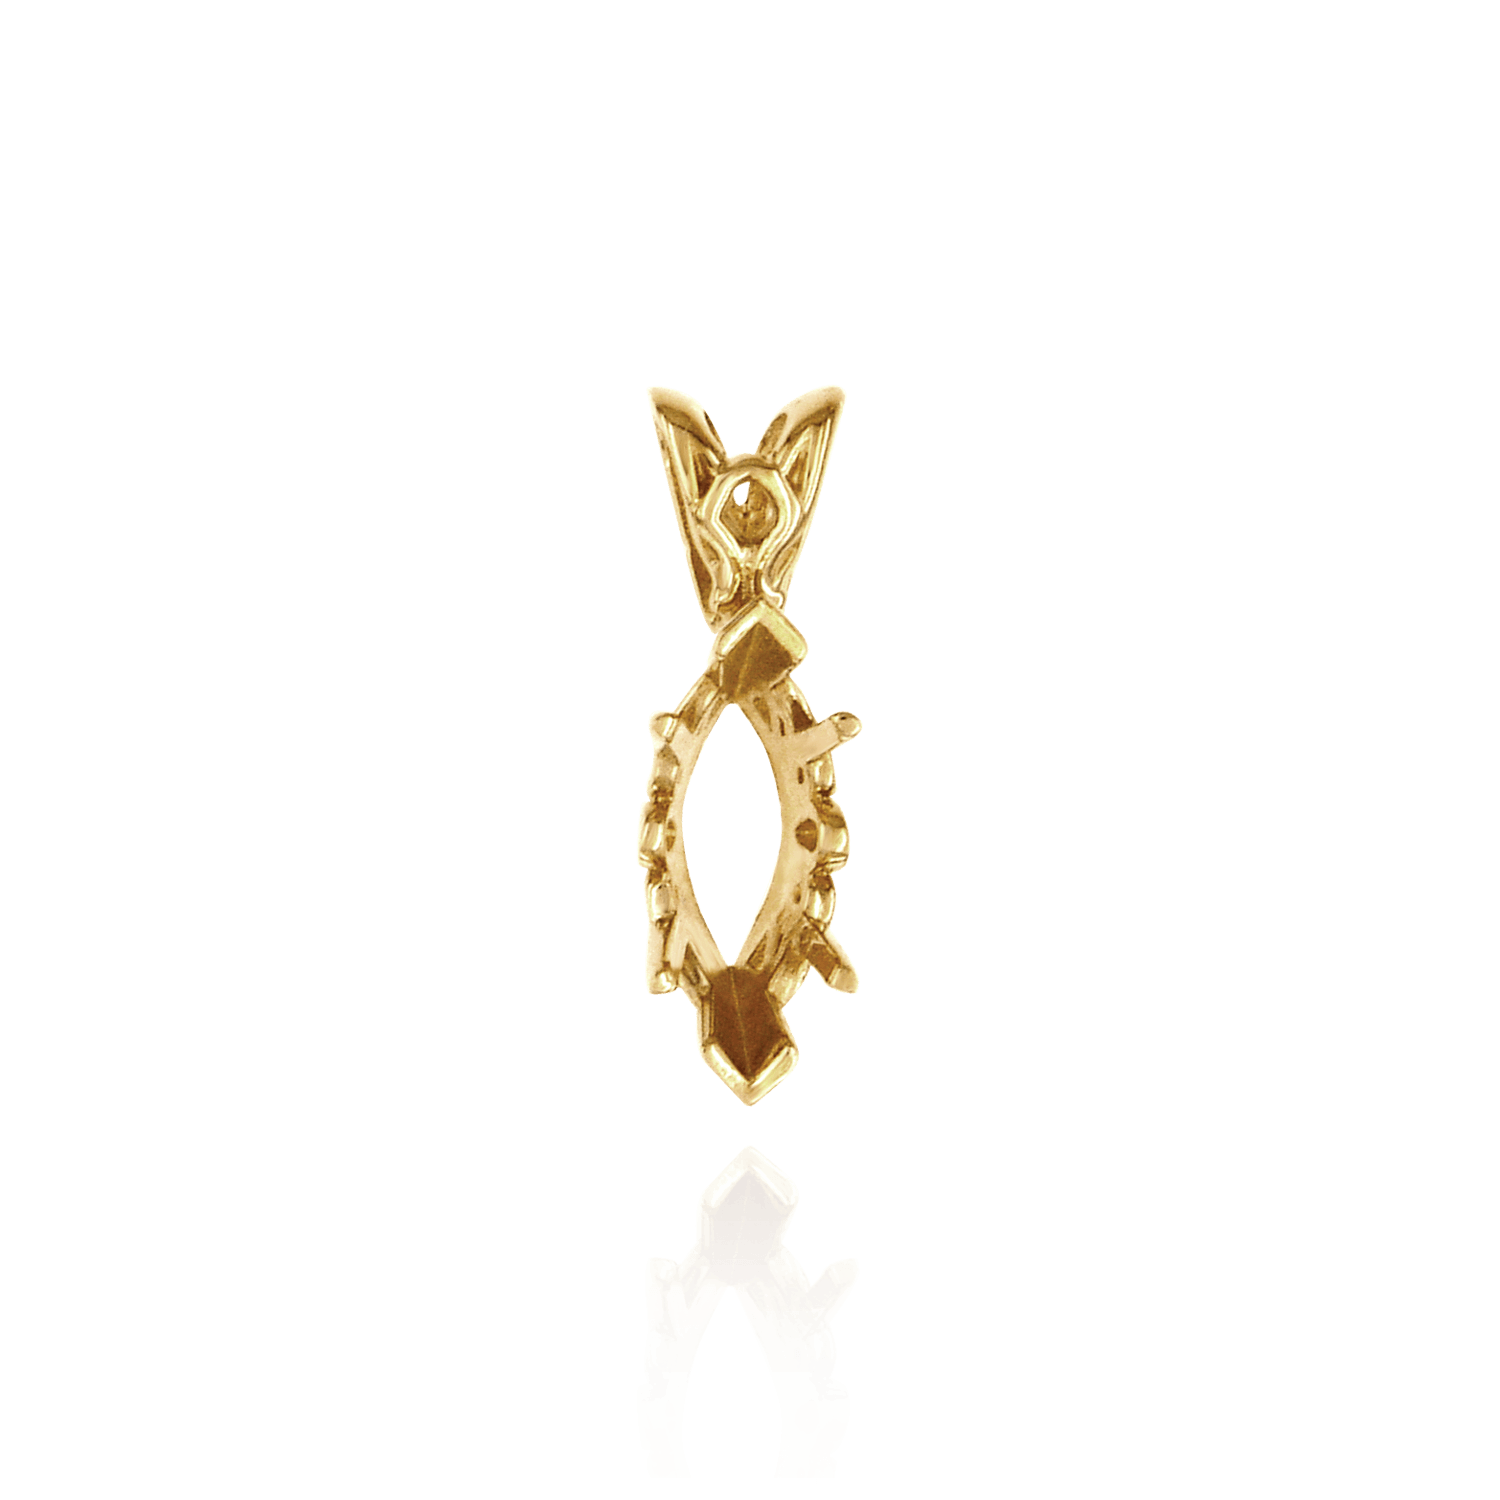 14K Gold Marquise Shape V-end and Four Prong Filigree Pendants in 14K Gold (Casting) in 14K Gold (3mm - 20mm)